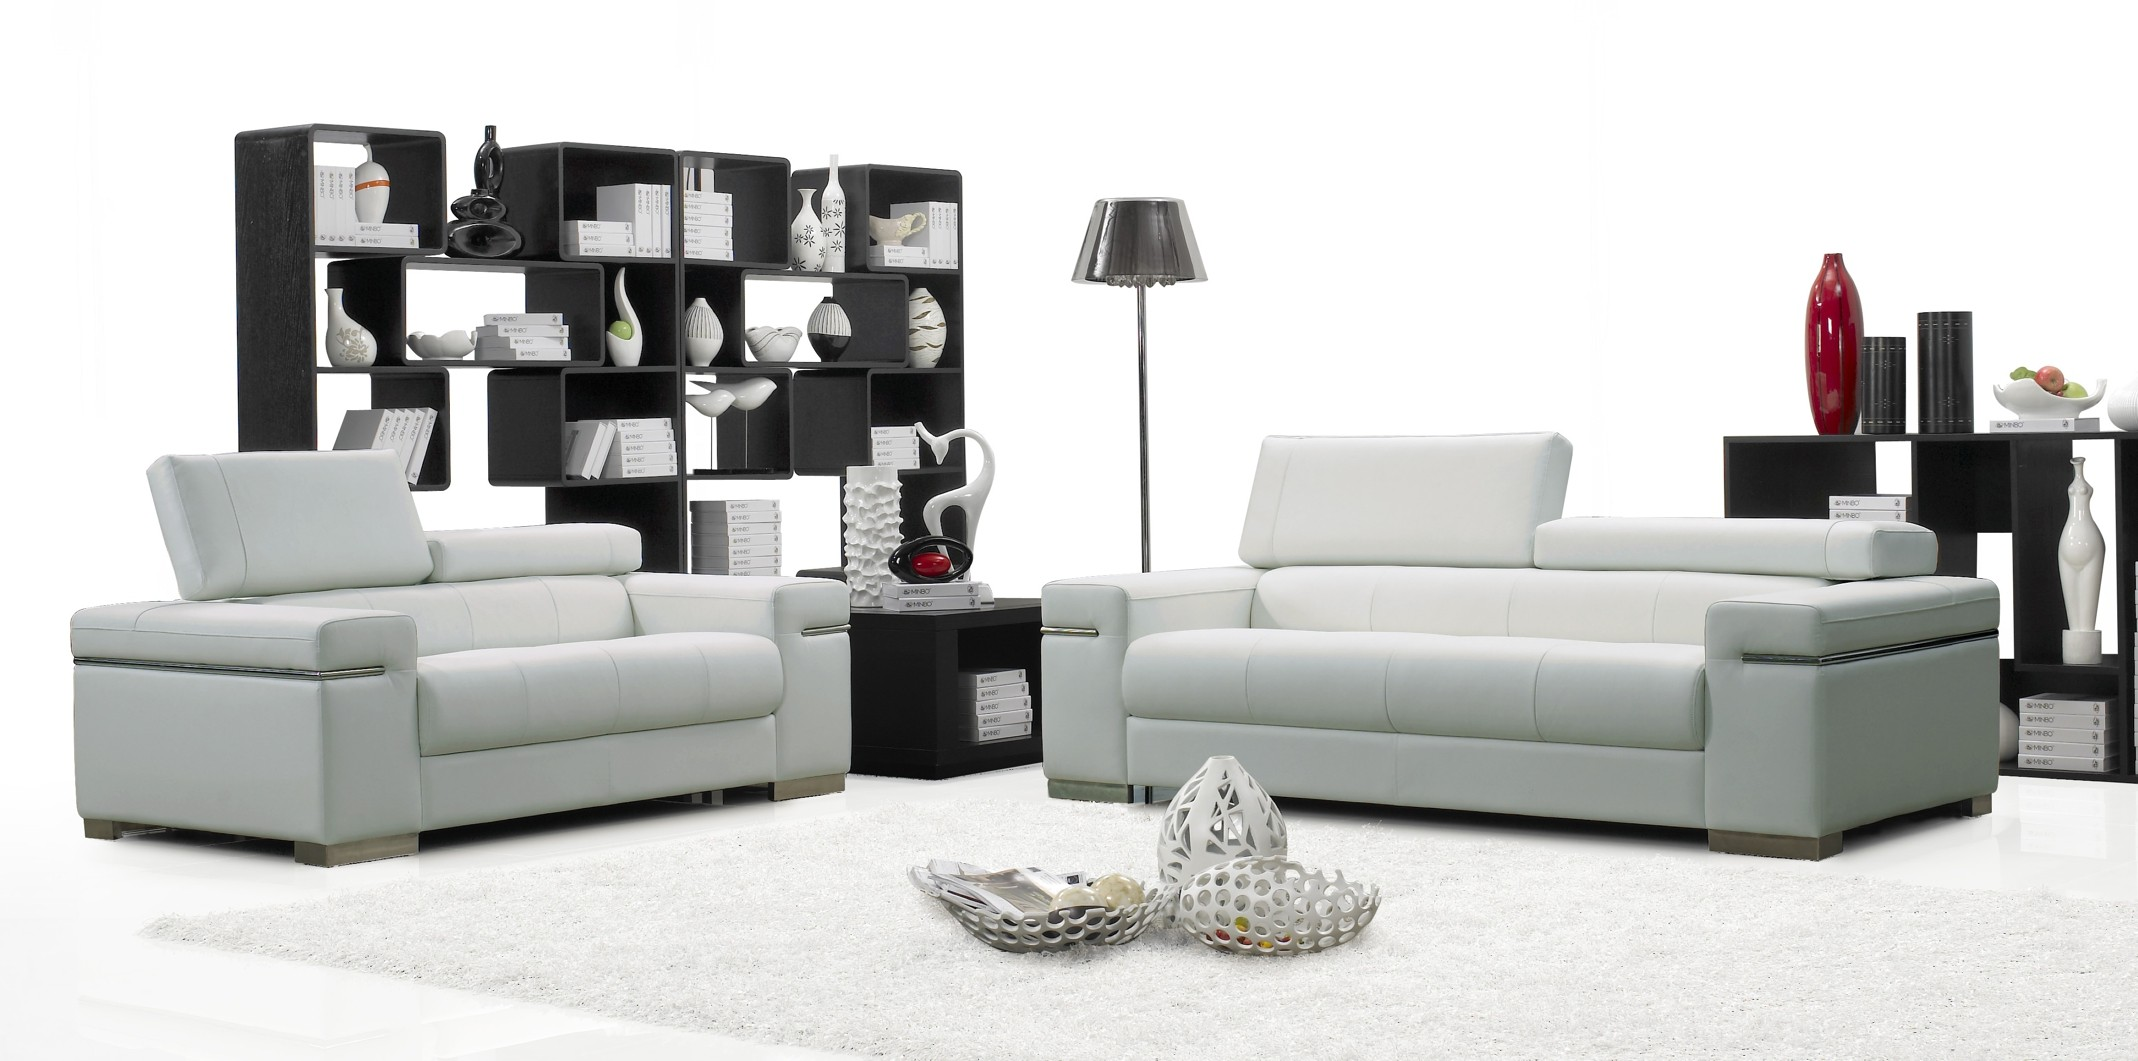 True modern furniture online homesfeed for Modern furniture